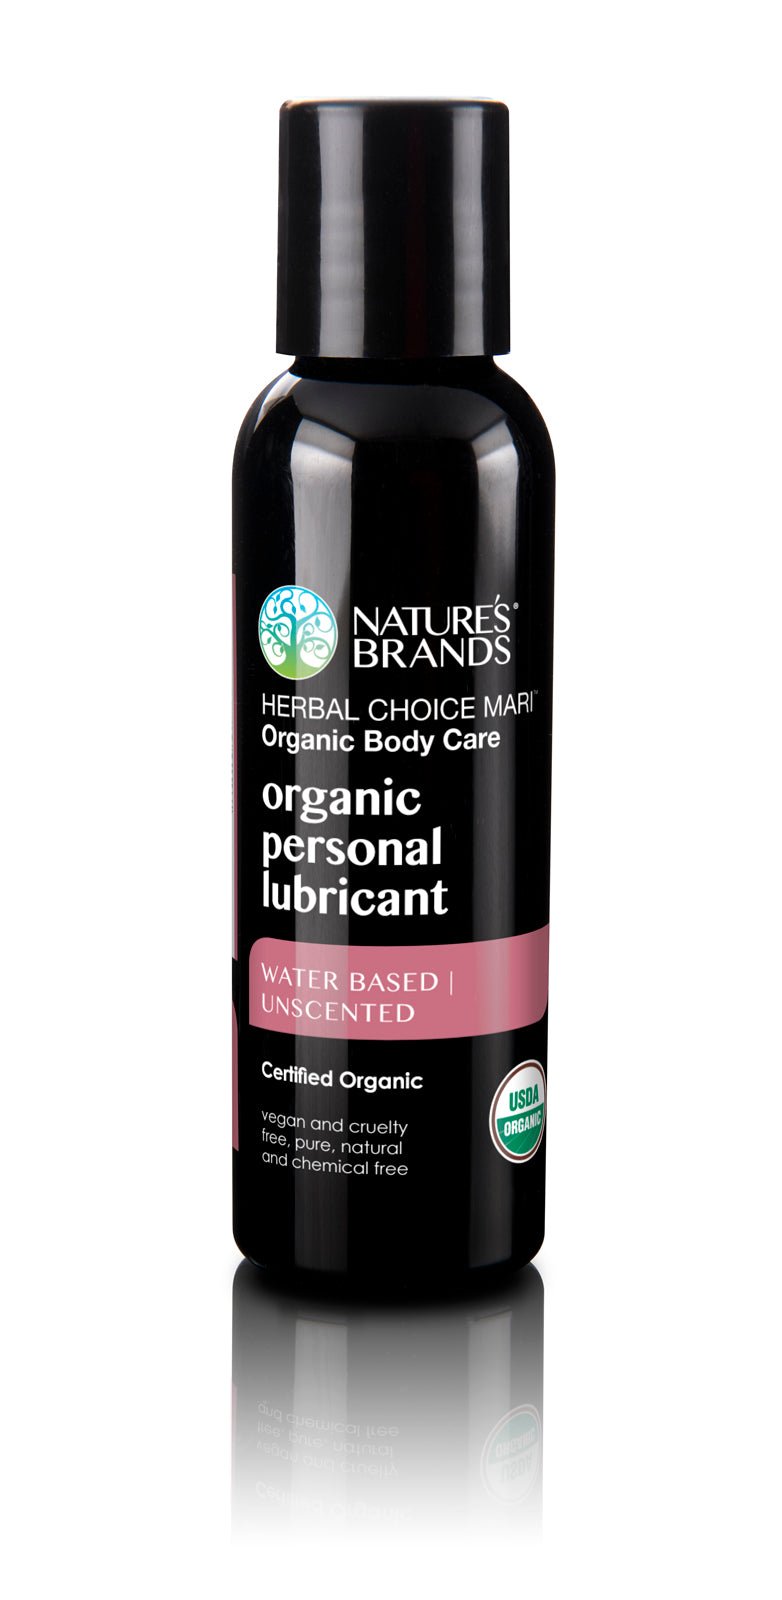 Herbal Choice Mari Organic Personal Lubricant - Herbal Choice Mari Organic Personal Lubricant - Herbal Choice Mari Organic Personal Lubricant